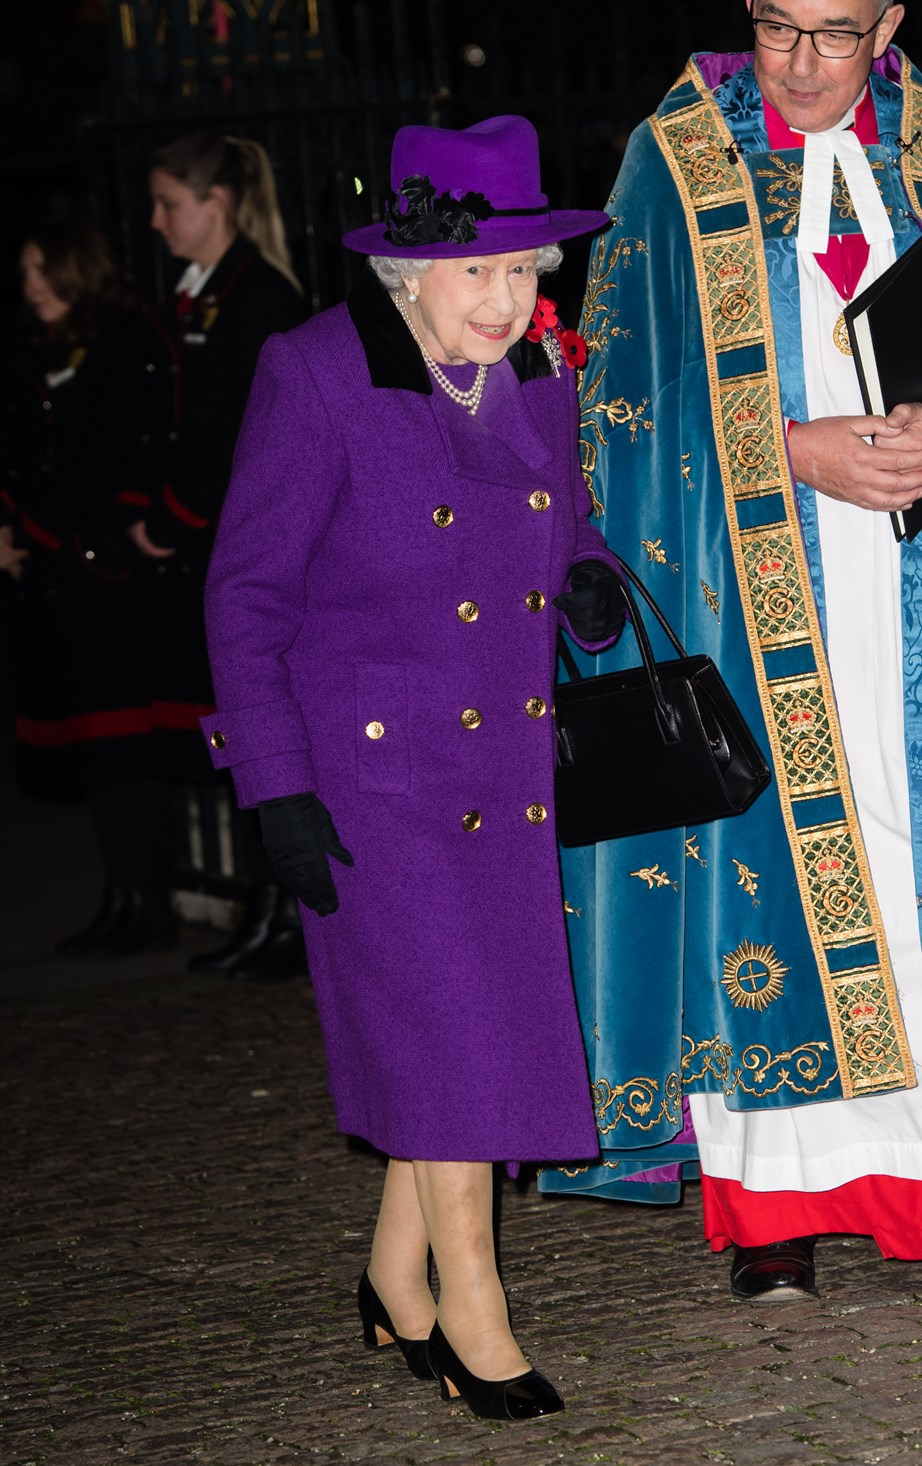 The Queen loves to wear bright colours, and this event was no different!